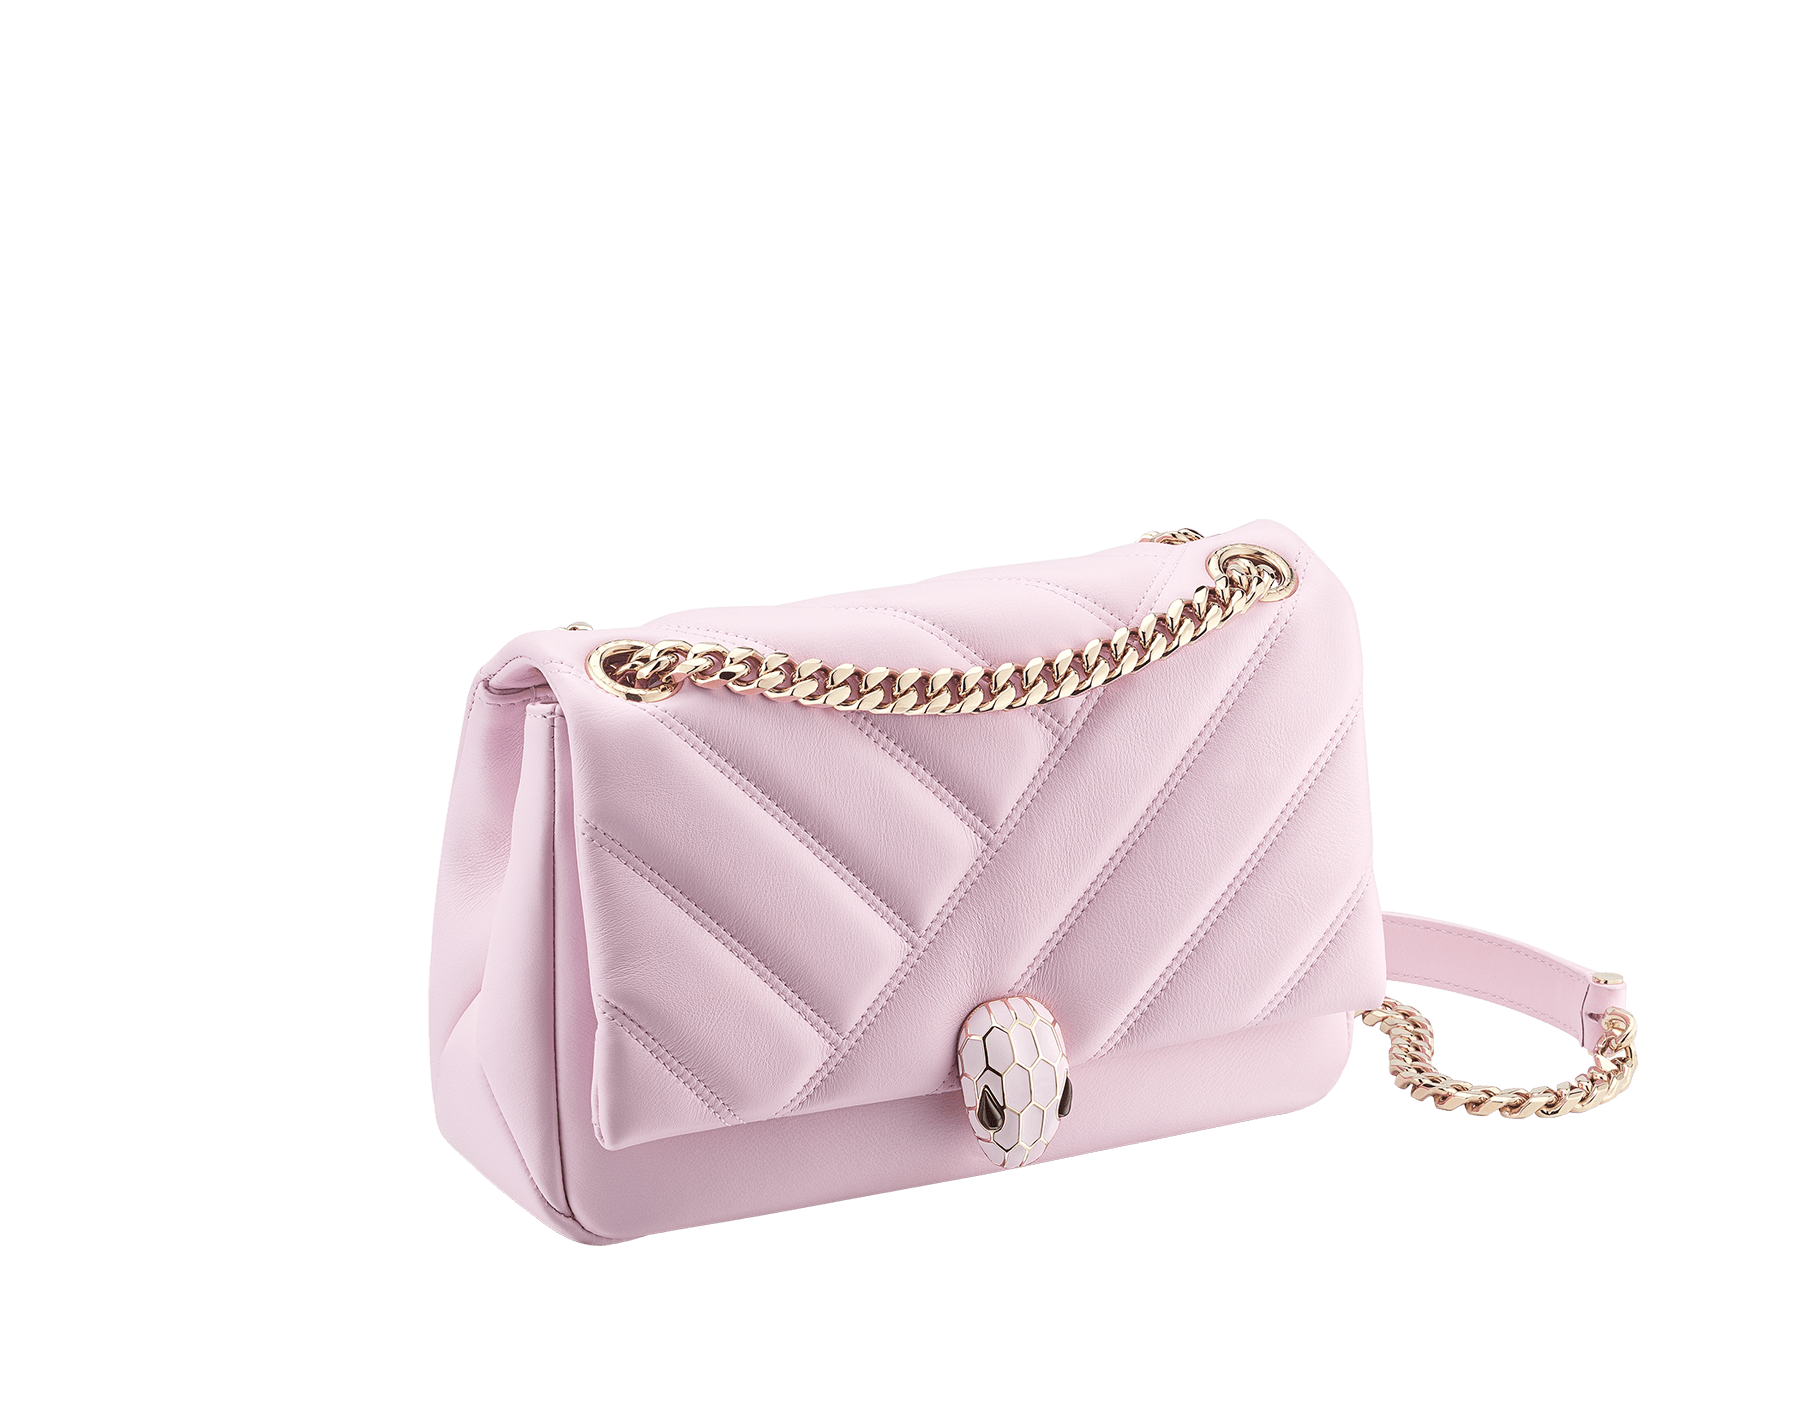 Serpenti Cabochon shoulder bag in soft matelassé rosa di francia nappa leather, with a graphic motif and rosa di francia calf leather. Brass light gold plated seductive snakehead closure in matt rosa di francia, shiny rosa di francia enamel and black onyx eyes. 288720 image 2